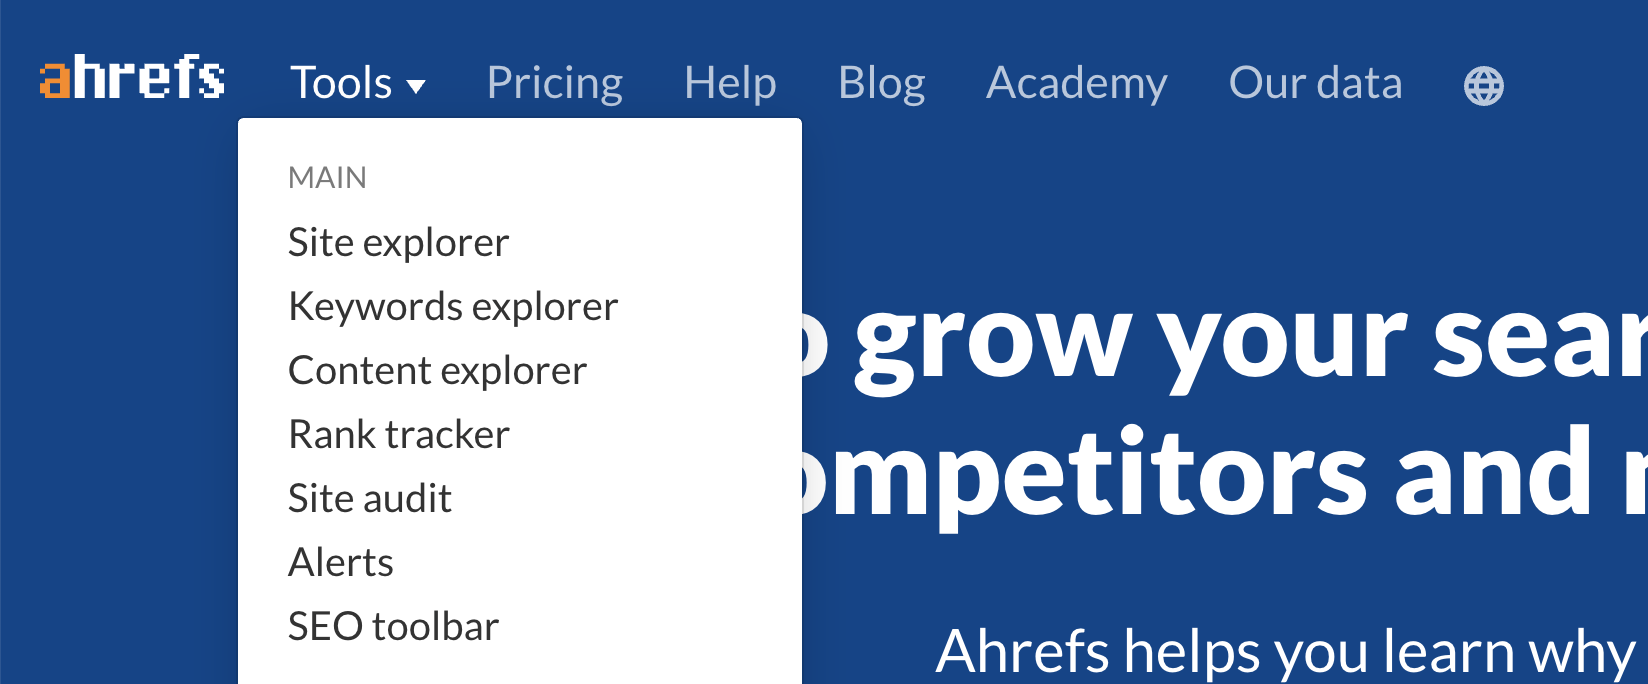 Ahrefs organizes their feedback boards by product